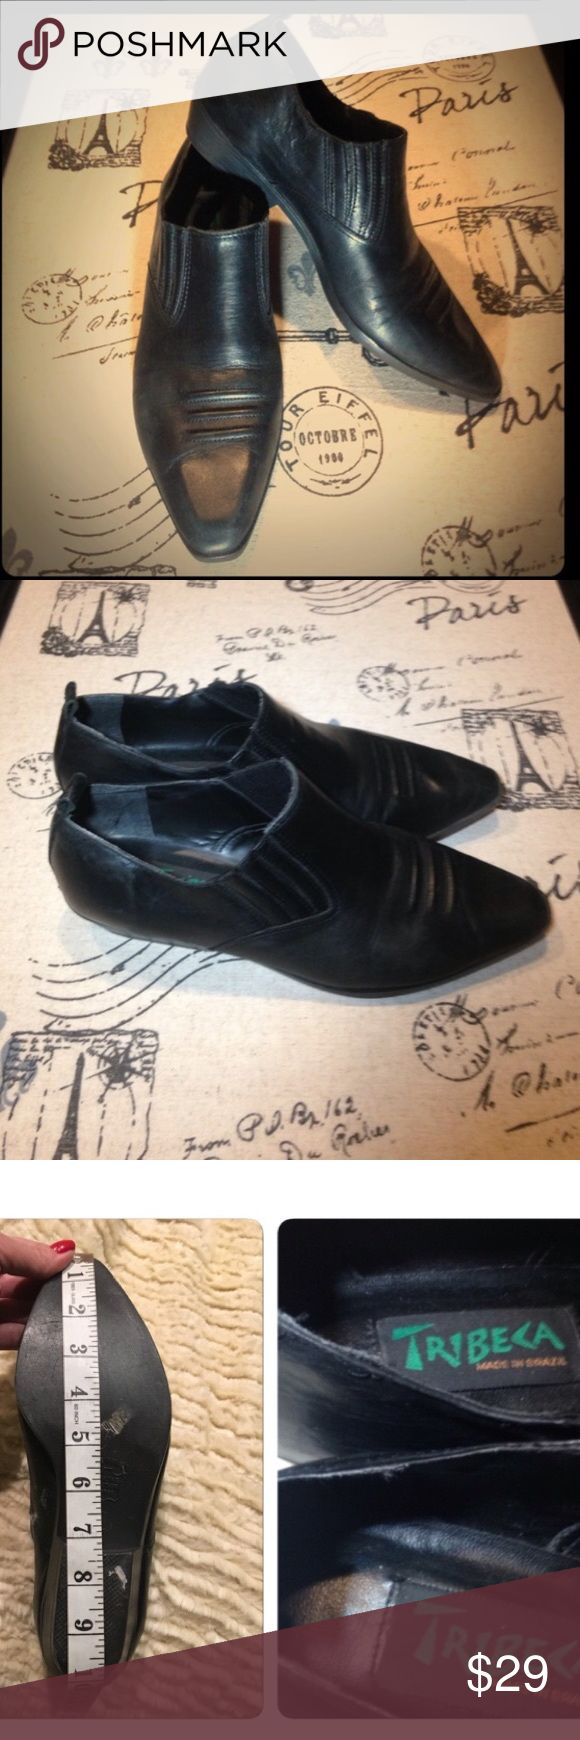 Vintage black western bootie 90s ankle boot 7.5 8 NOT Free People. But similar to a style by the brand. Awesome true vintage 90s western style minimalist boots. Marked an 8 but I think they'd best fit a 7.5 with socks. Made by TriBeCa. Pure 90s glory. Very sleek profile. Soft leather. And in great overall vintage condition. Please feel free to offer!! Free People Shoes Ankle Boots & Booties